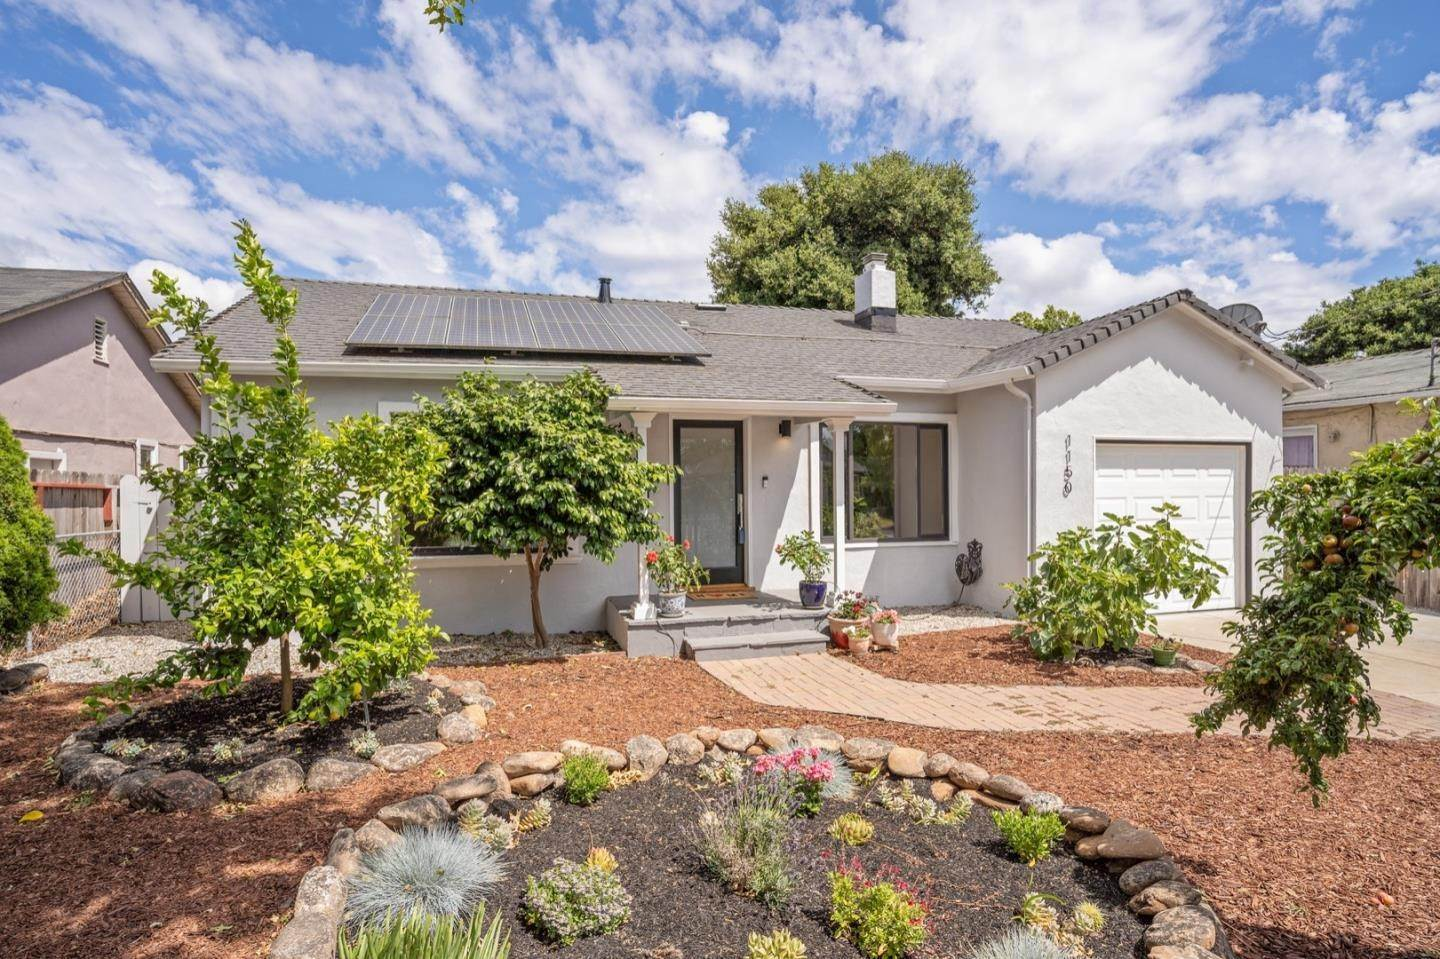 Single Family Homes for Sale at 1150 Hollyburne Avenue Menlo Park, California 94025 United States